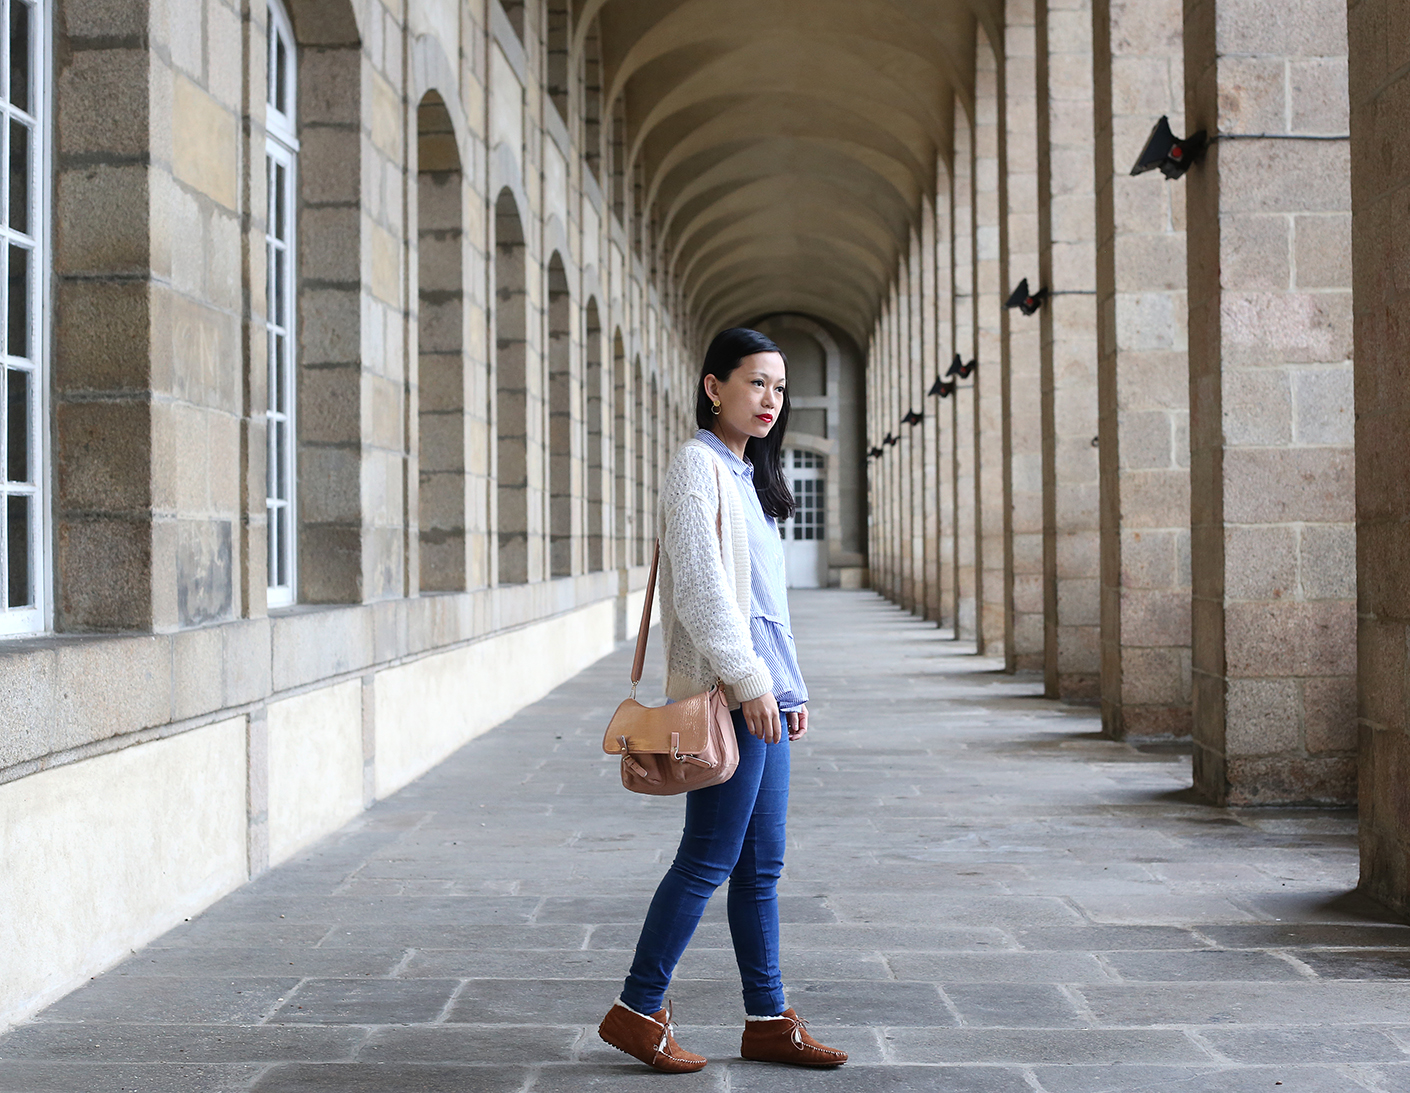 petite and so what - uniforme d hiver 6